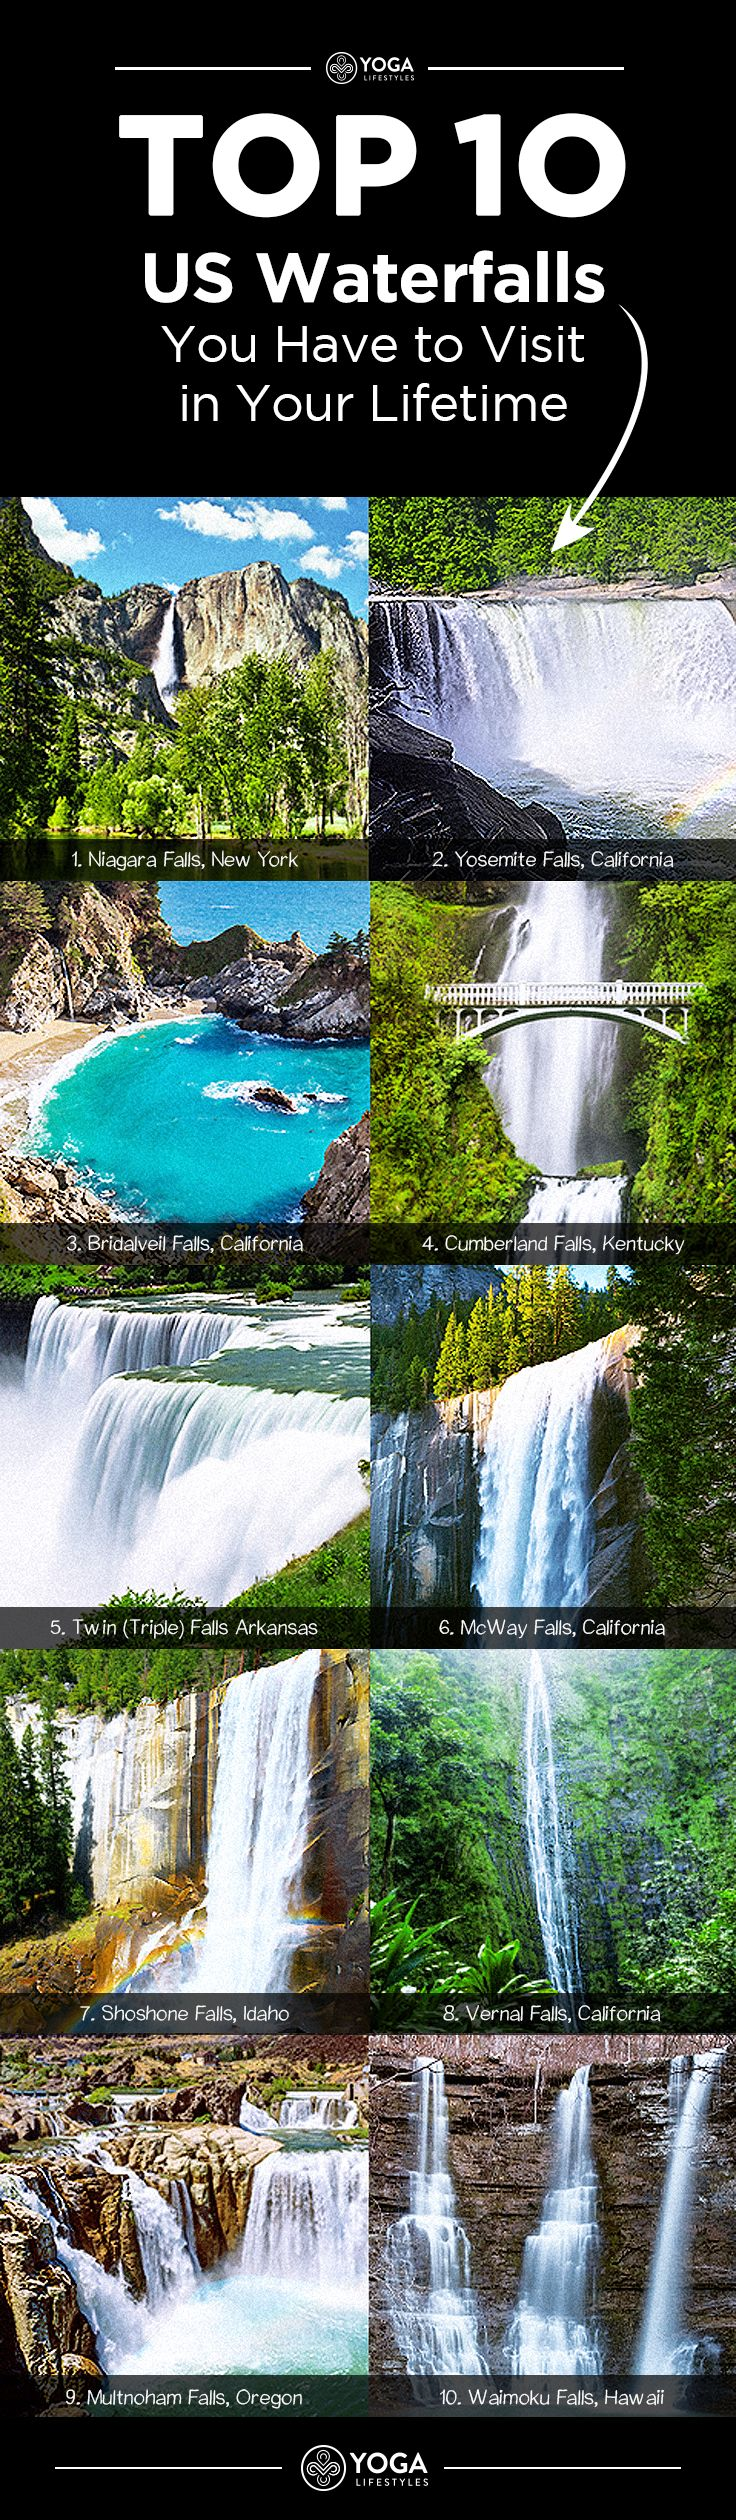 Top 10 Famous Waterfalls You Have to Visit in Your Lifetime